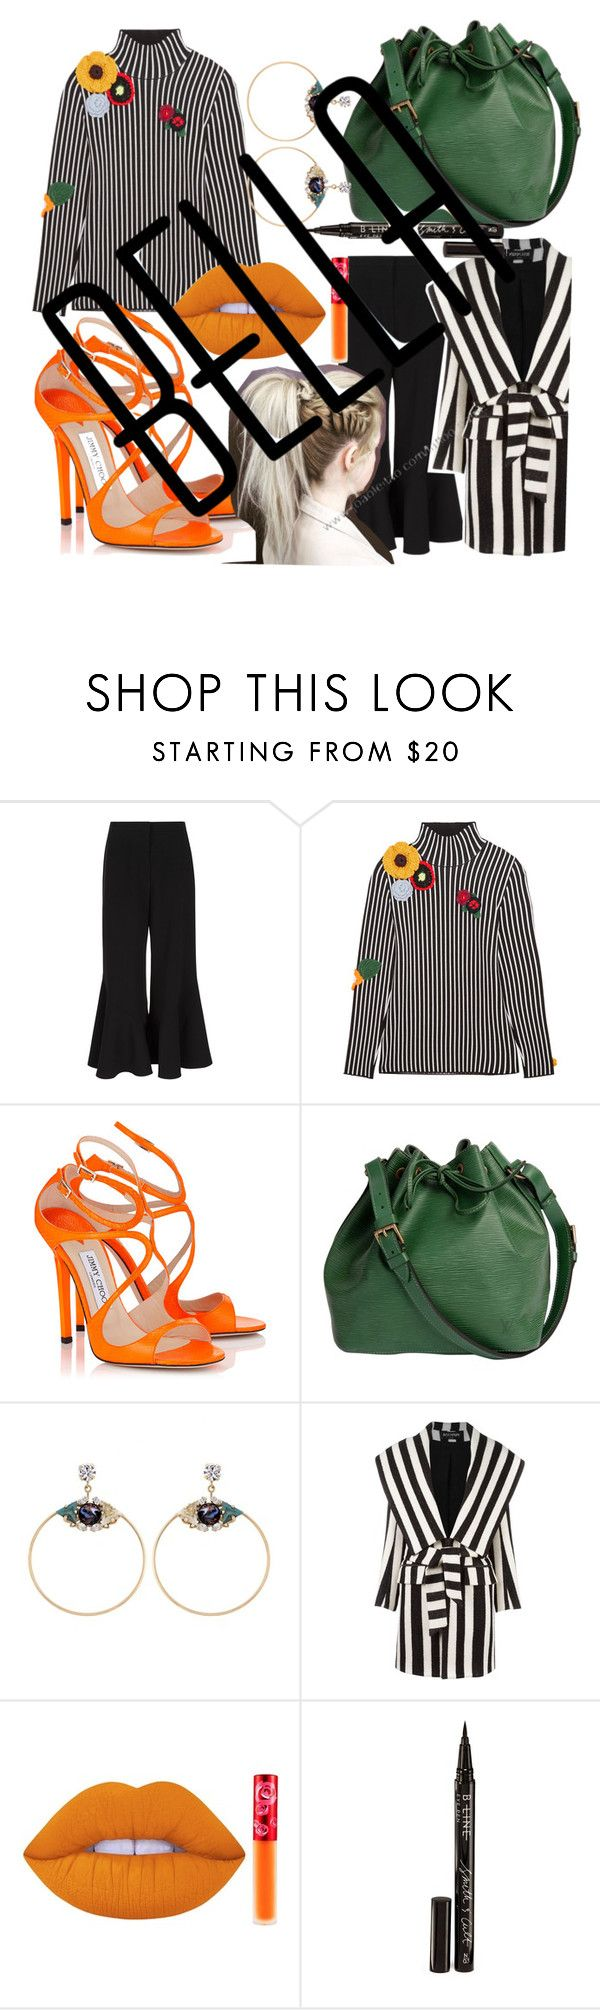 """""""#SIDETOSIDE#ARIANAGRANDE#LOVEHER"""" by helloitsstacy ❤ liked on Polyvore featuring Peter Pilotto, Christopher Kane, Louis Vuitton, Anton Heunis, Balmain, Lime Crime and Smith & Cult"""